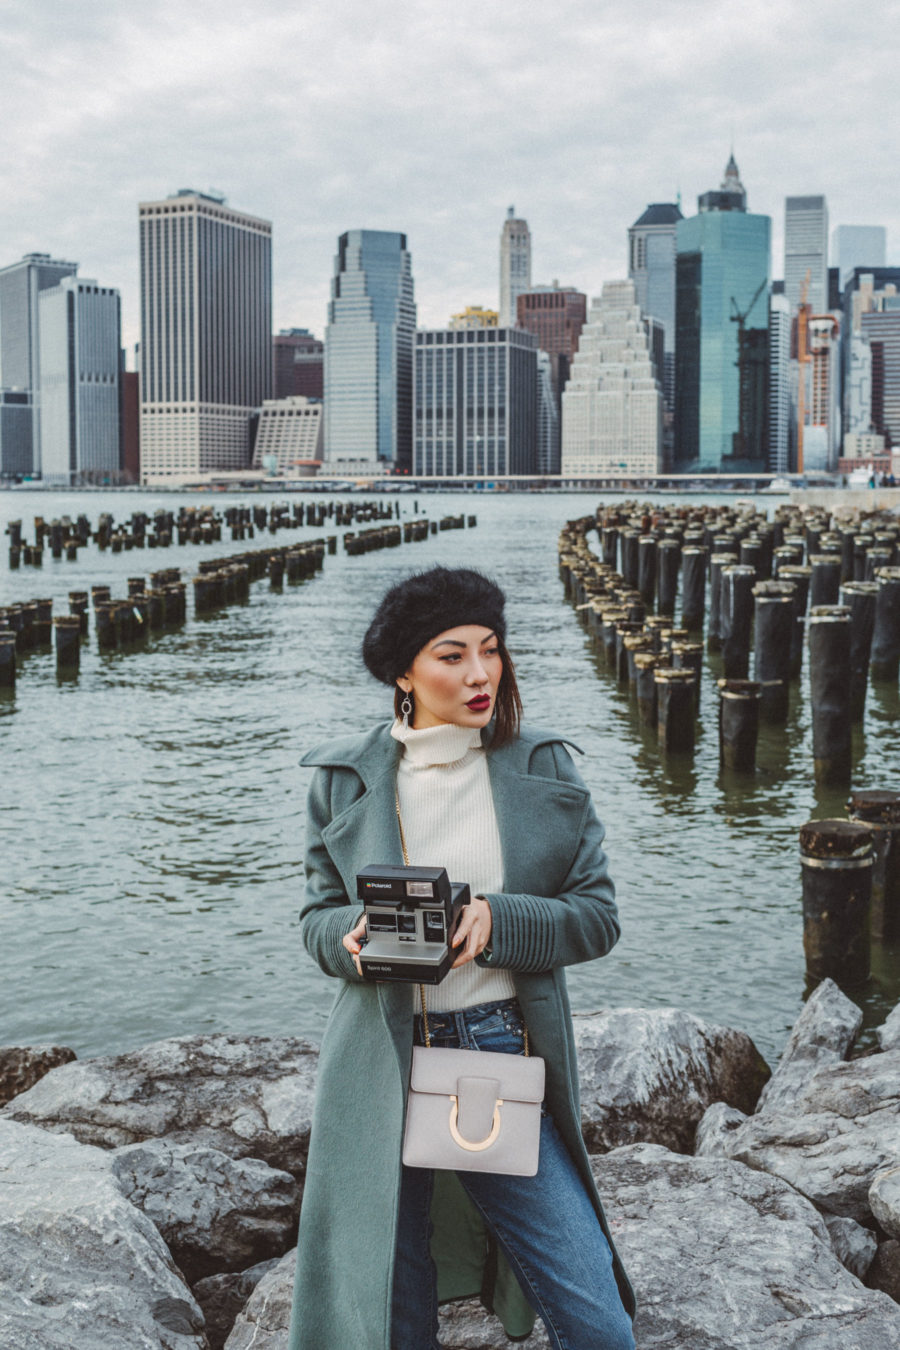 Cozy Layered looks, seafoam green coat, fashion blogger, new york fashion blogger, street style fashion, ootd, asian blogger, parisian chic outfit, beret outfit, how to wear a beret, beret styling, chic winter style, new york fashion // Notjessfashion.com